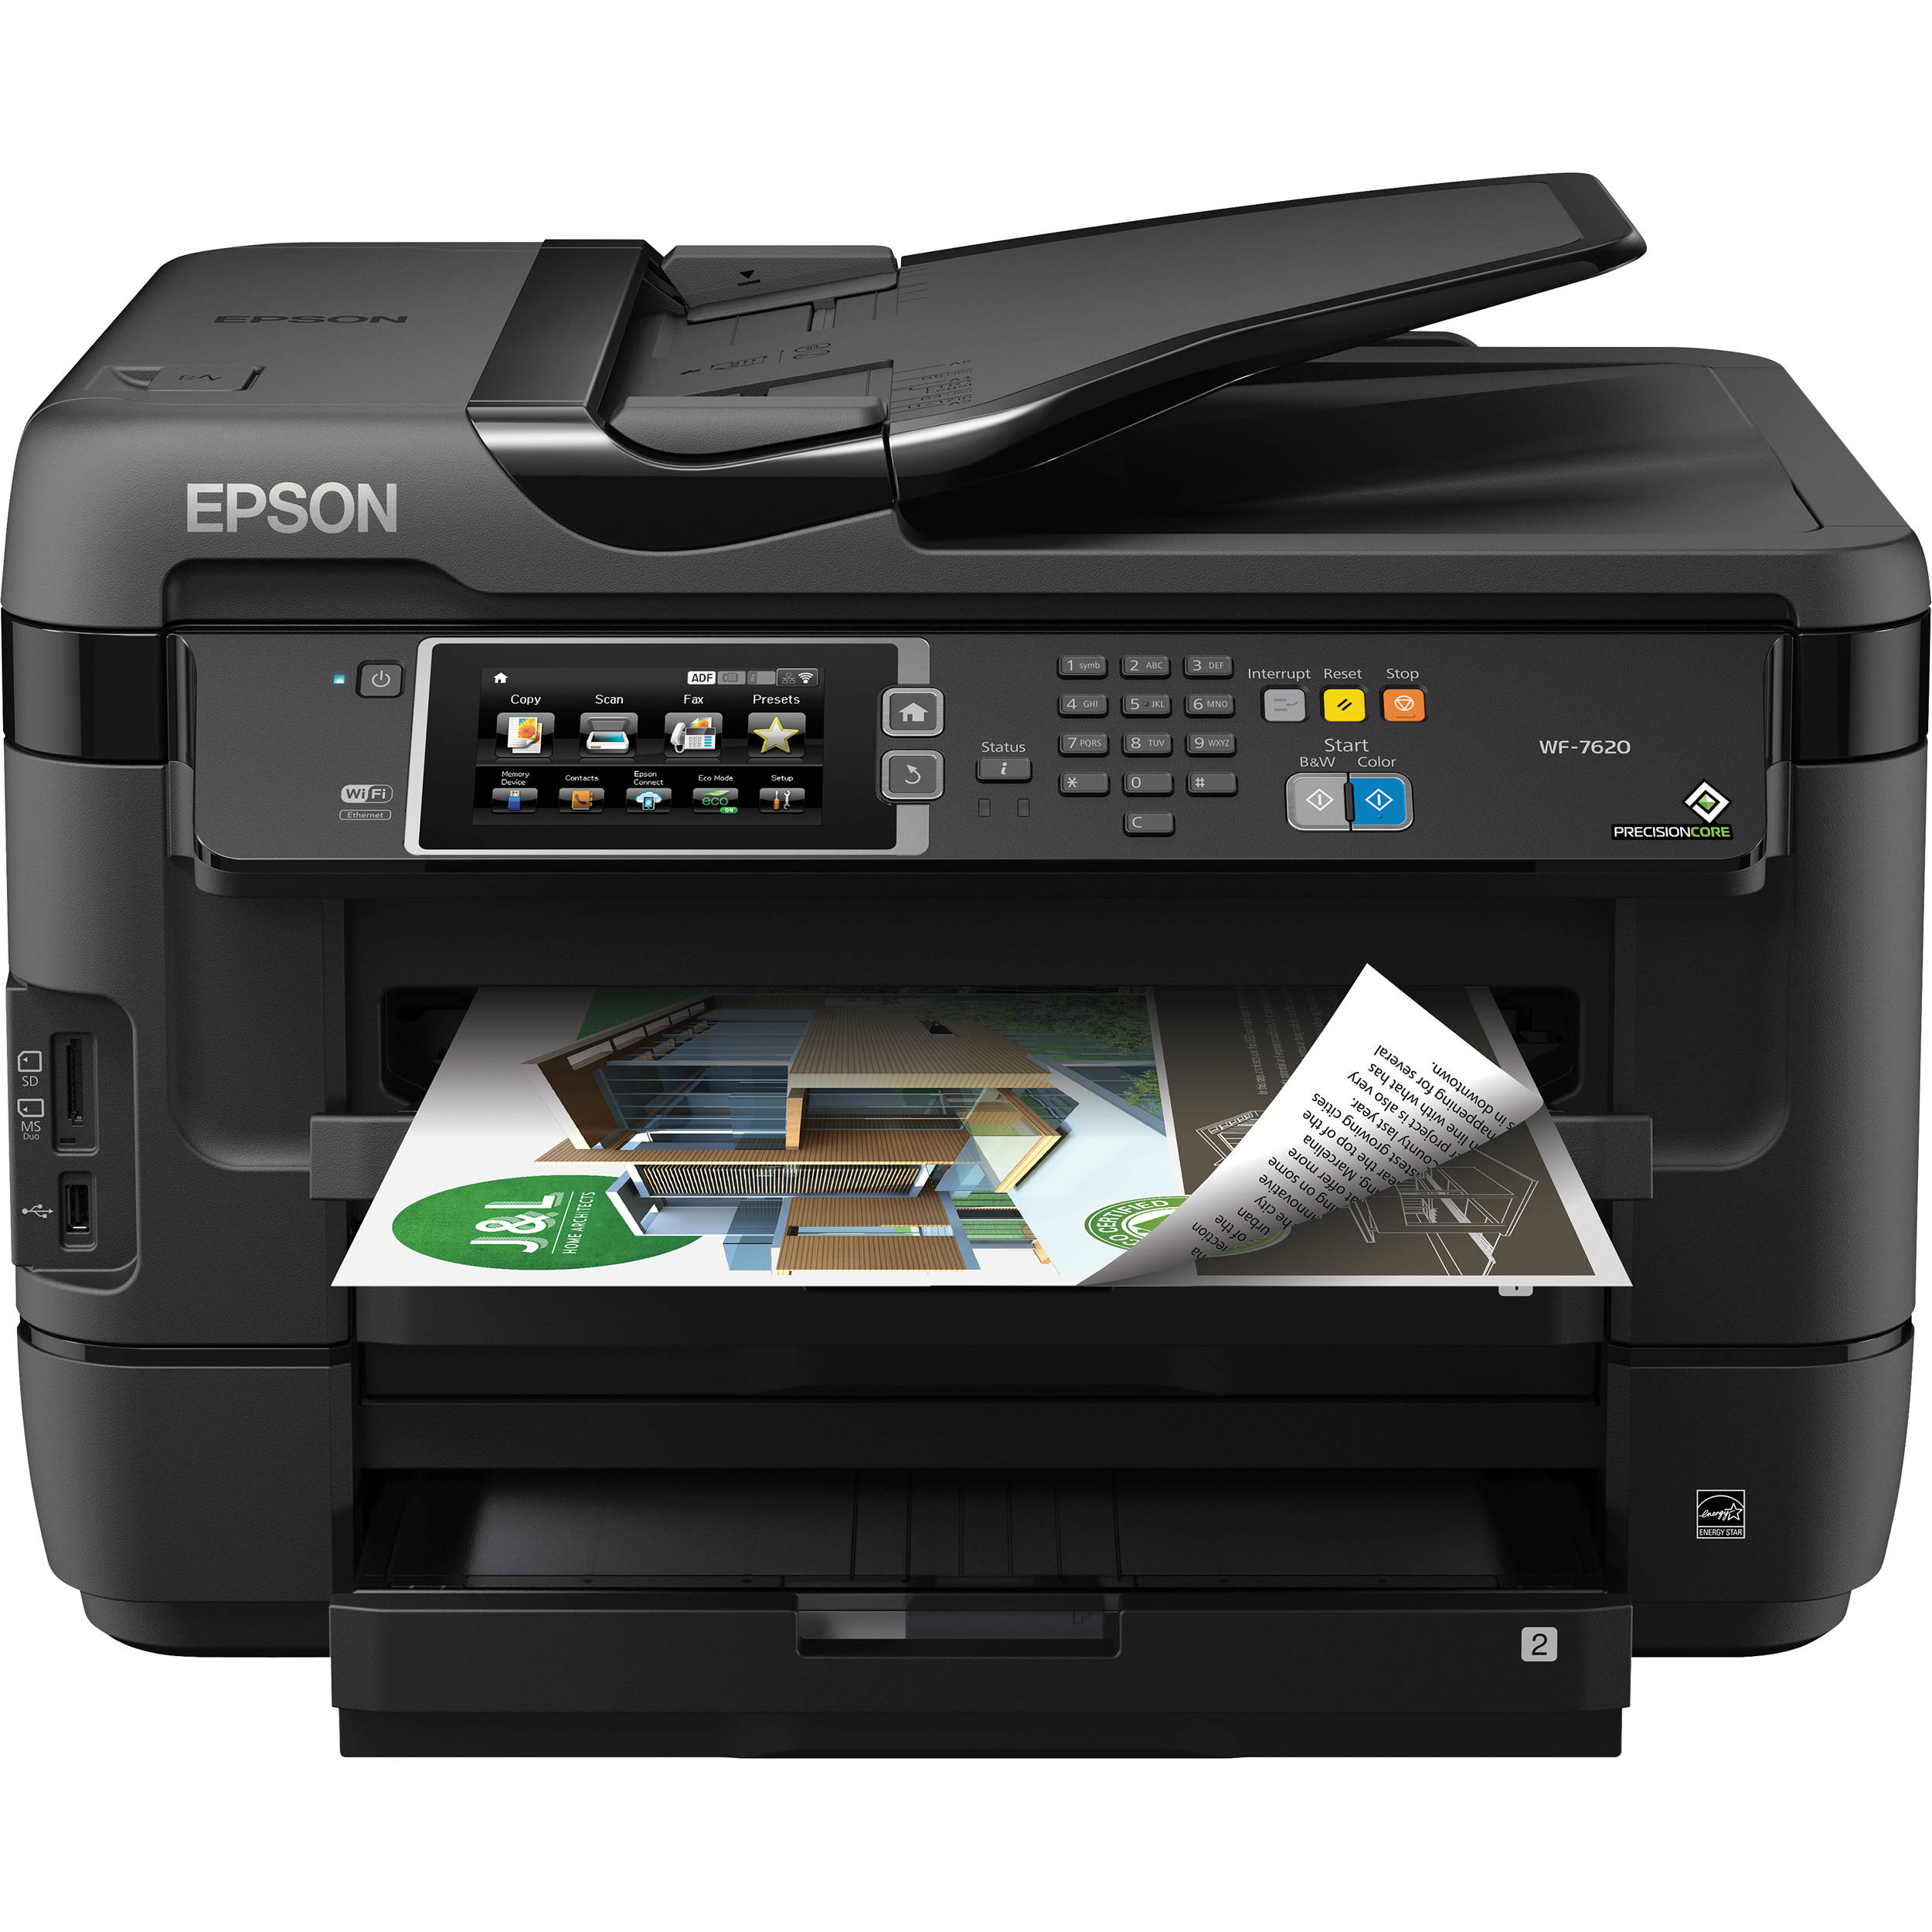 Color printer wireless - Epson Workforce Wf 7620 Wireless Color All In One Inkjet Printer